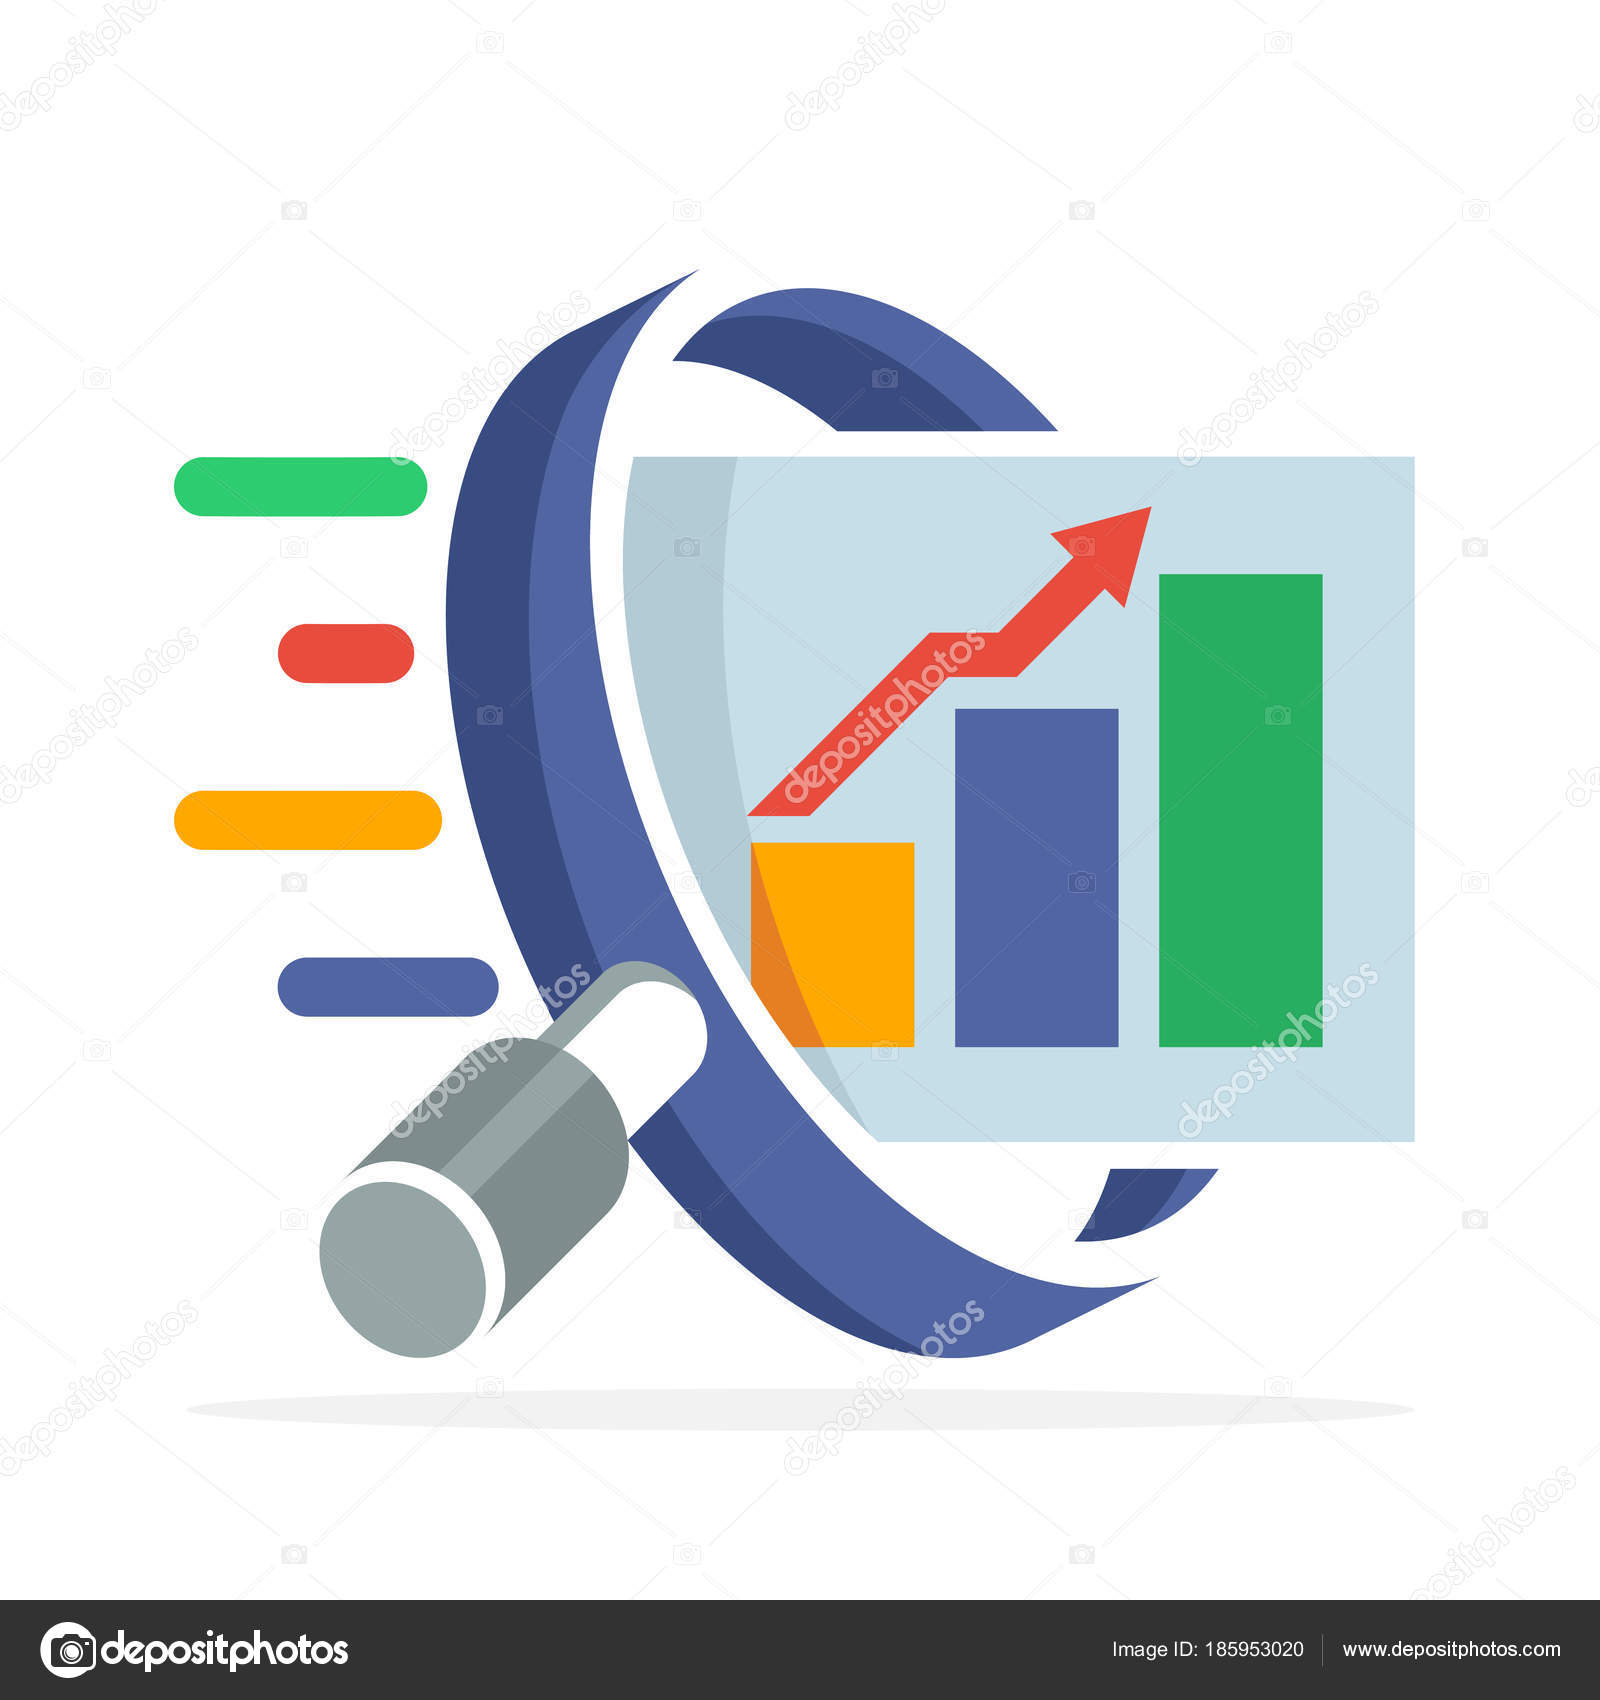 Logo icon concept searching analyzing business finance marketing logo icon concept searching analyzing business finance marketing illustrated magnifying stock vector thecheapjerseys Choice Image